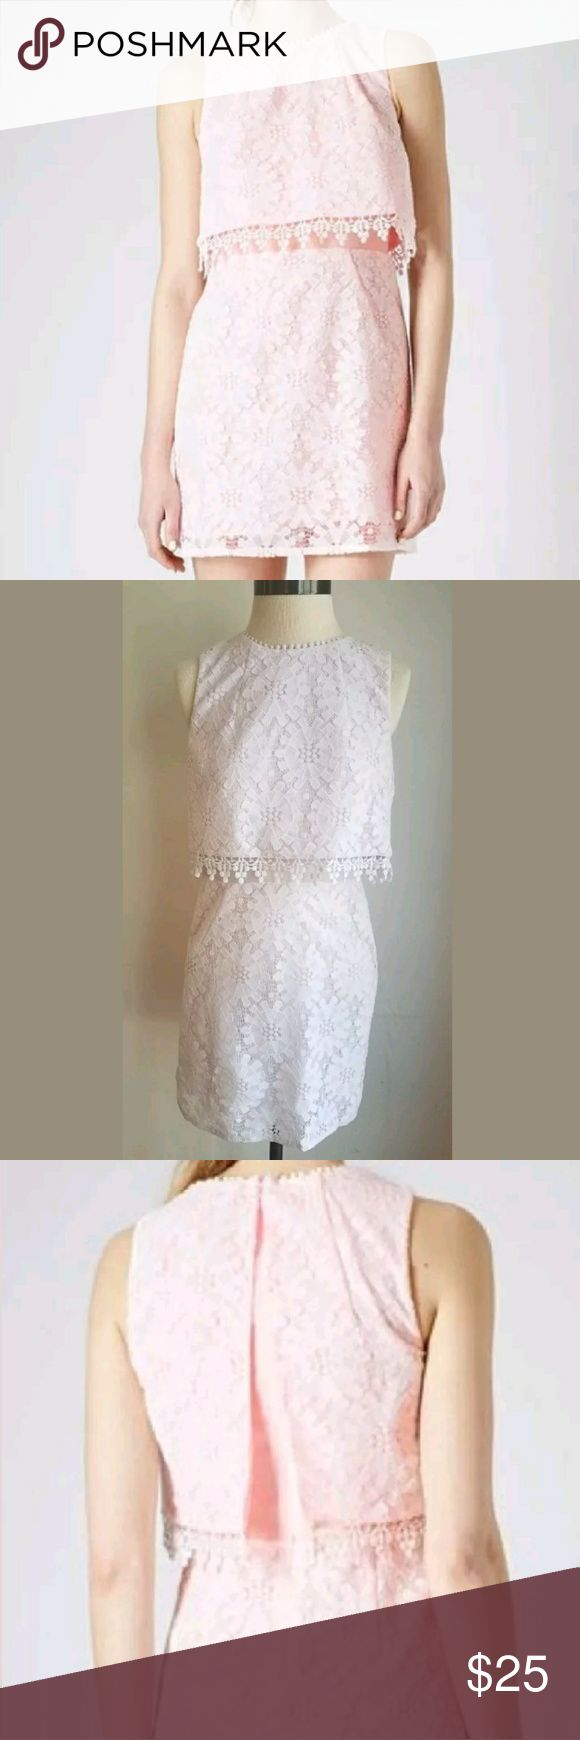 """🇱🇷SALE🇱🇷 TOPSHOP Pale Pink Lace Crop Dress Excellent Condition ~ Smoke Free and Clean ~ ONLY NOTED FLAW: Missing Hook for Hook and Eye At Base Of Neck - See photo ~ No Noted Tears, Stains, Snags, Pulling or Damage.  Pale Pink ~ Floral Lace Overlay ~ 100% Polyester ~ White Crochet Detail ~ Zips Up Back ~ Lined ~ Sleeveless  All Measurements Taken With Garment Lying Flat. All Measurements Are Approximate. Length 33"""" Bust (armpit to armpit) 16"""" Waist (side to side) 14"""" Hips (side to side)…"""